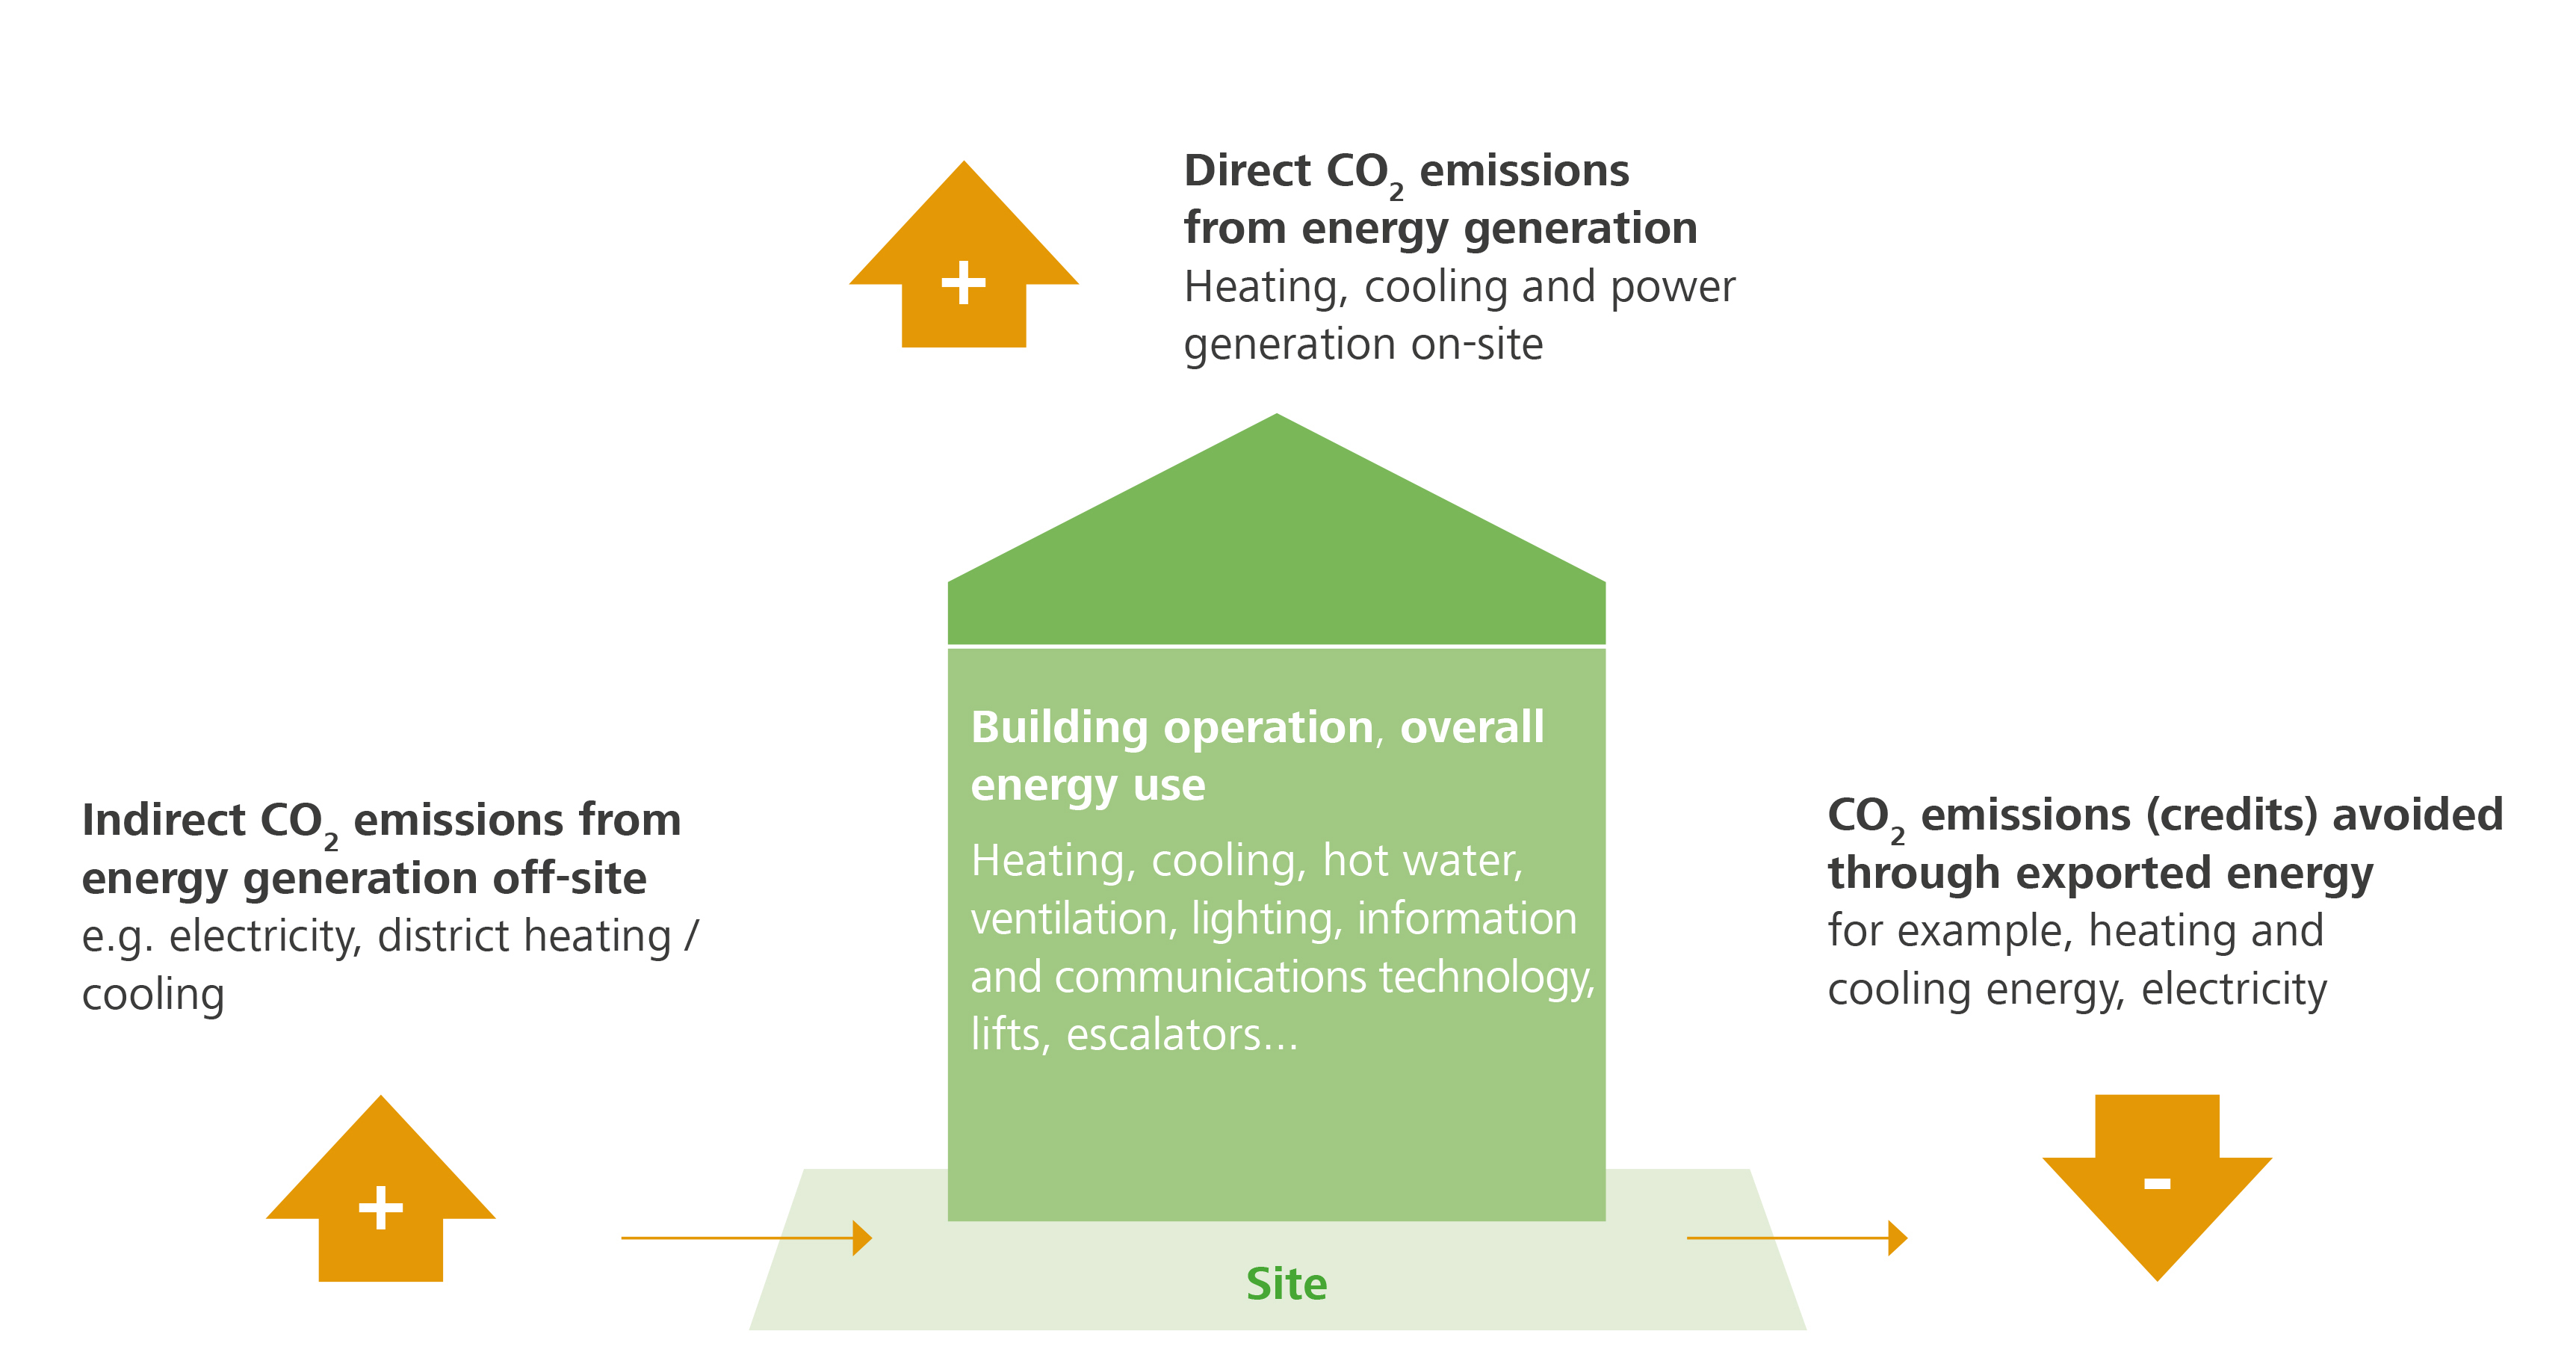 Accounting of greenhouse gas emissions for the accounting scope 'Operation and Construction'